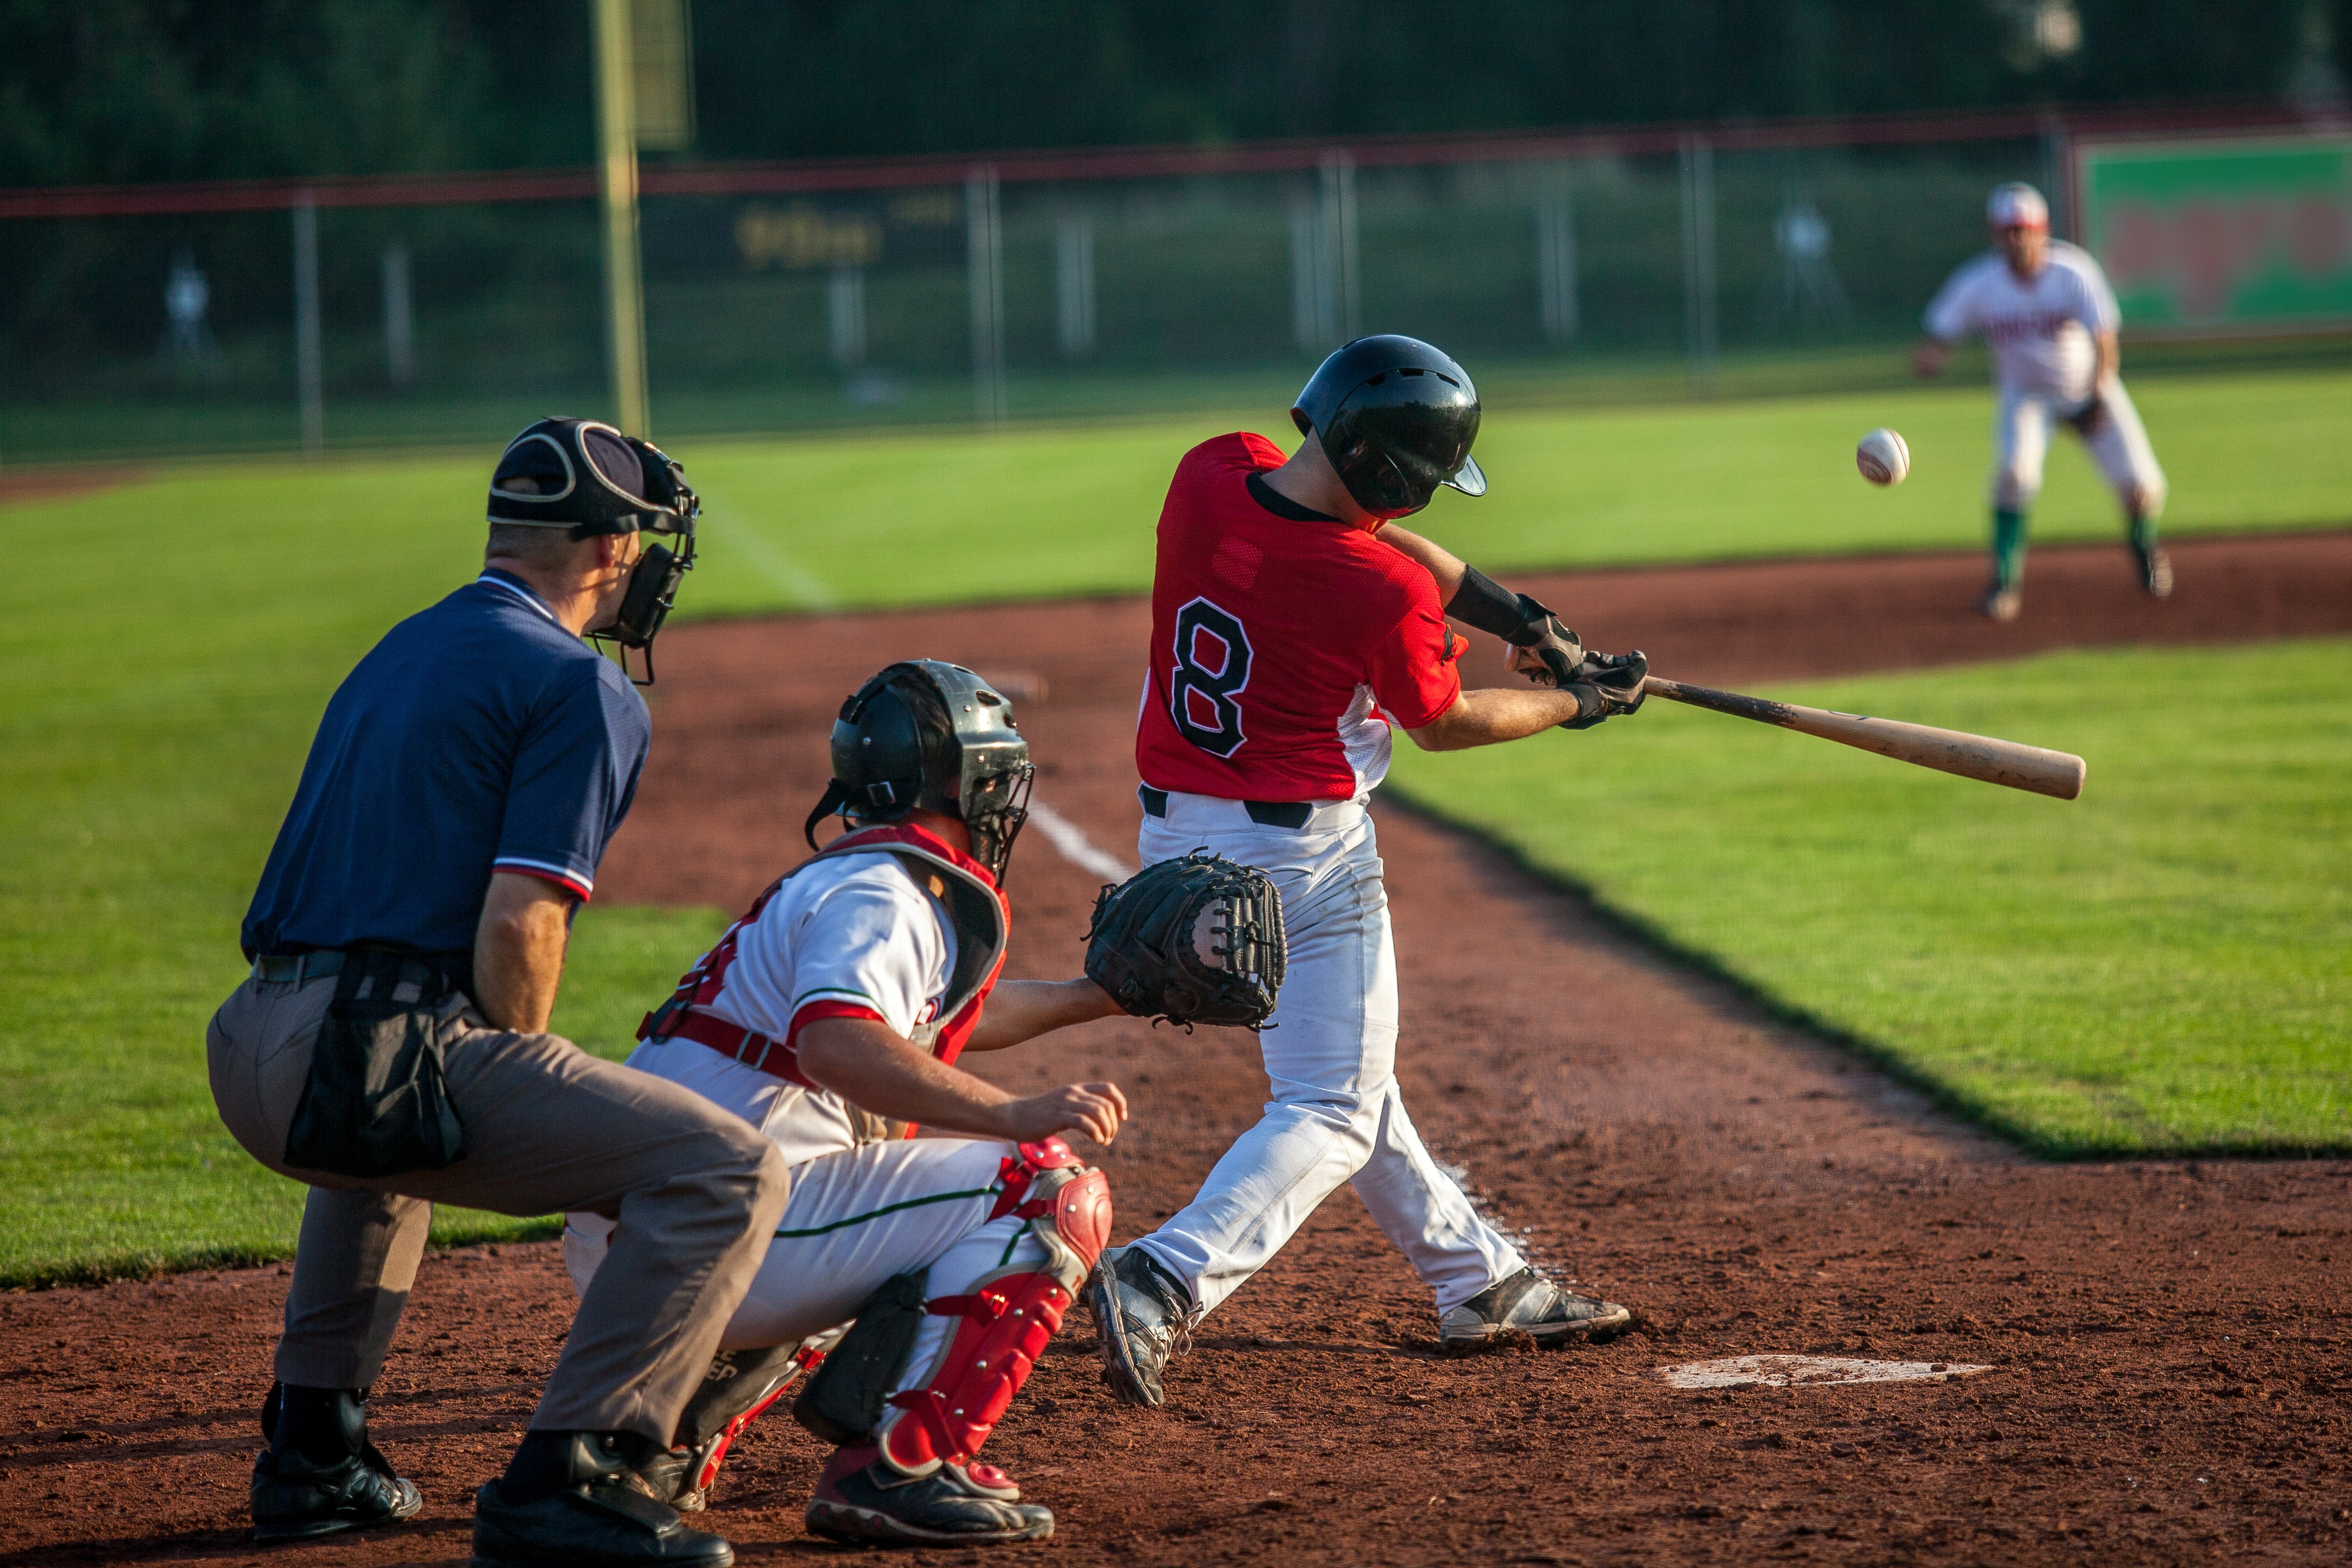 Epidemic of Athletic Injuries Hits Young Athletes